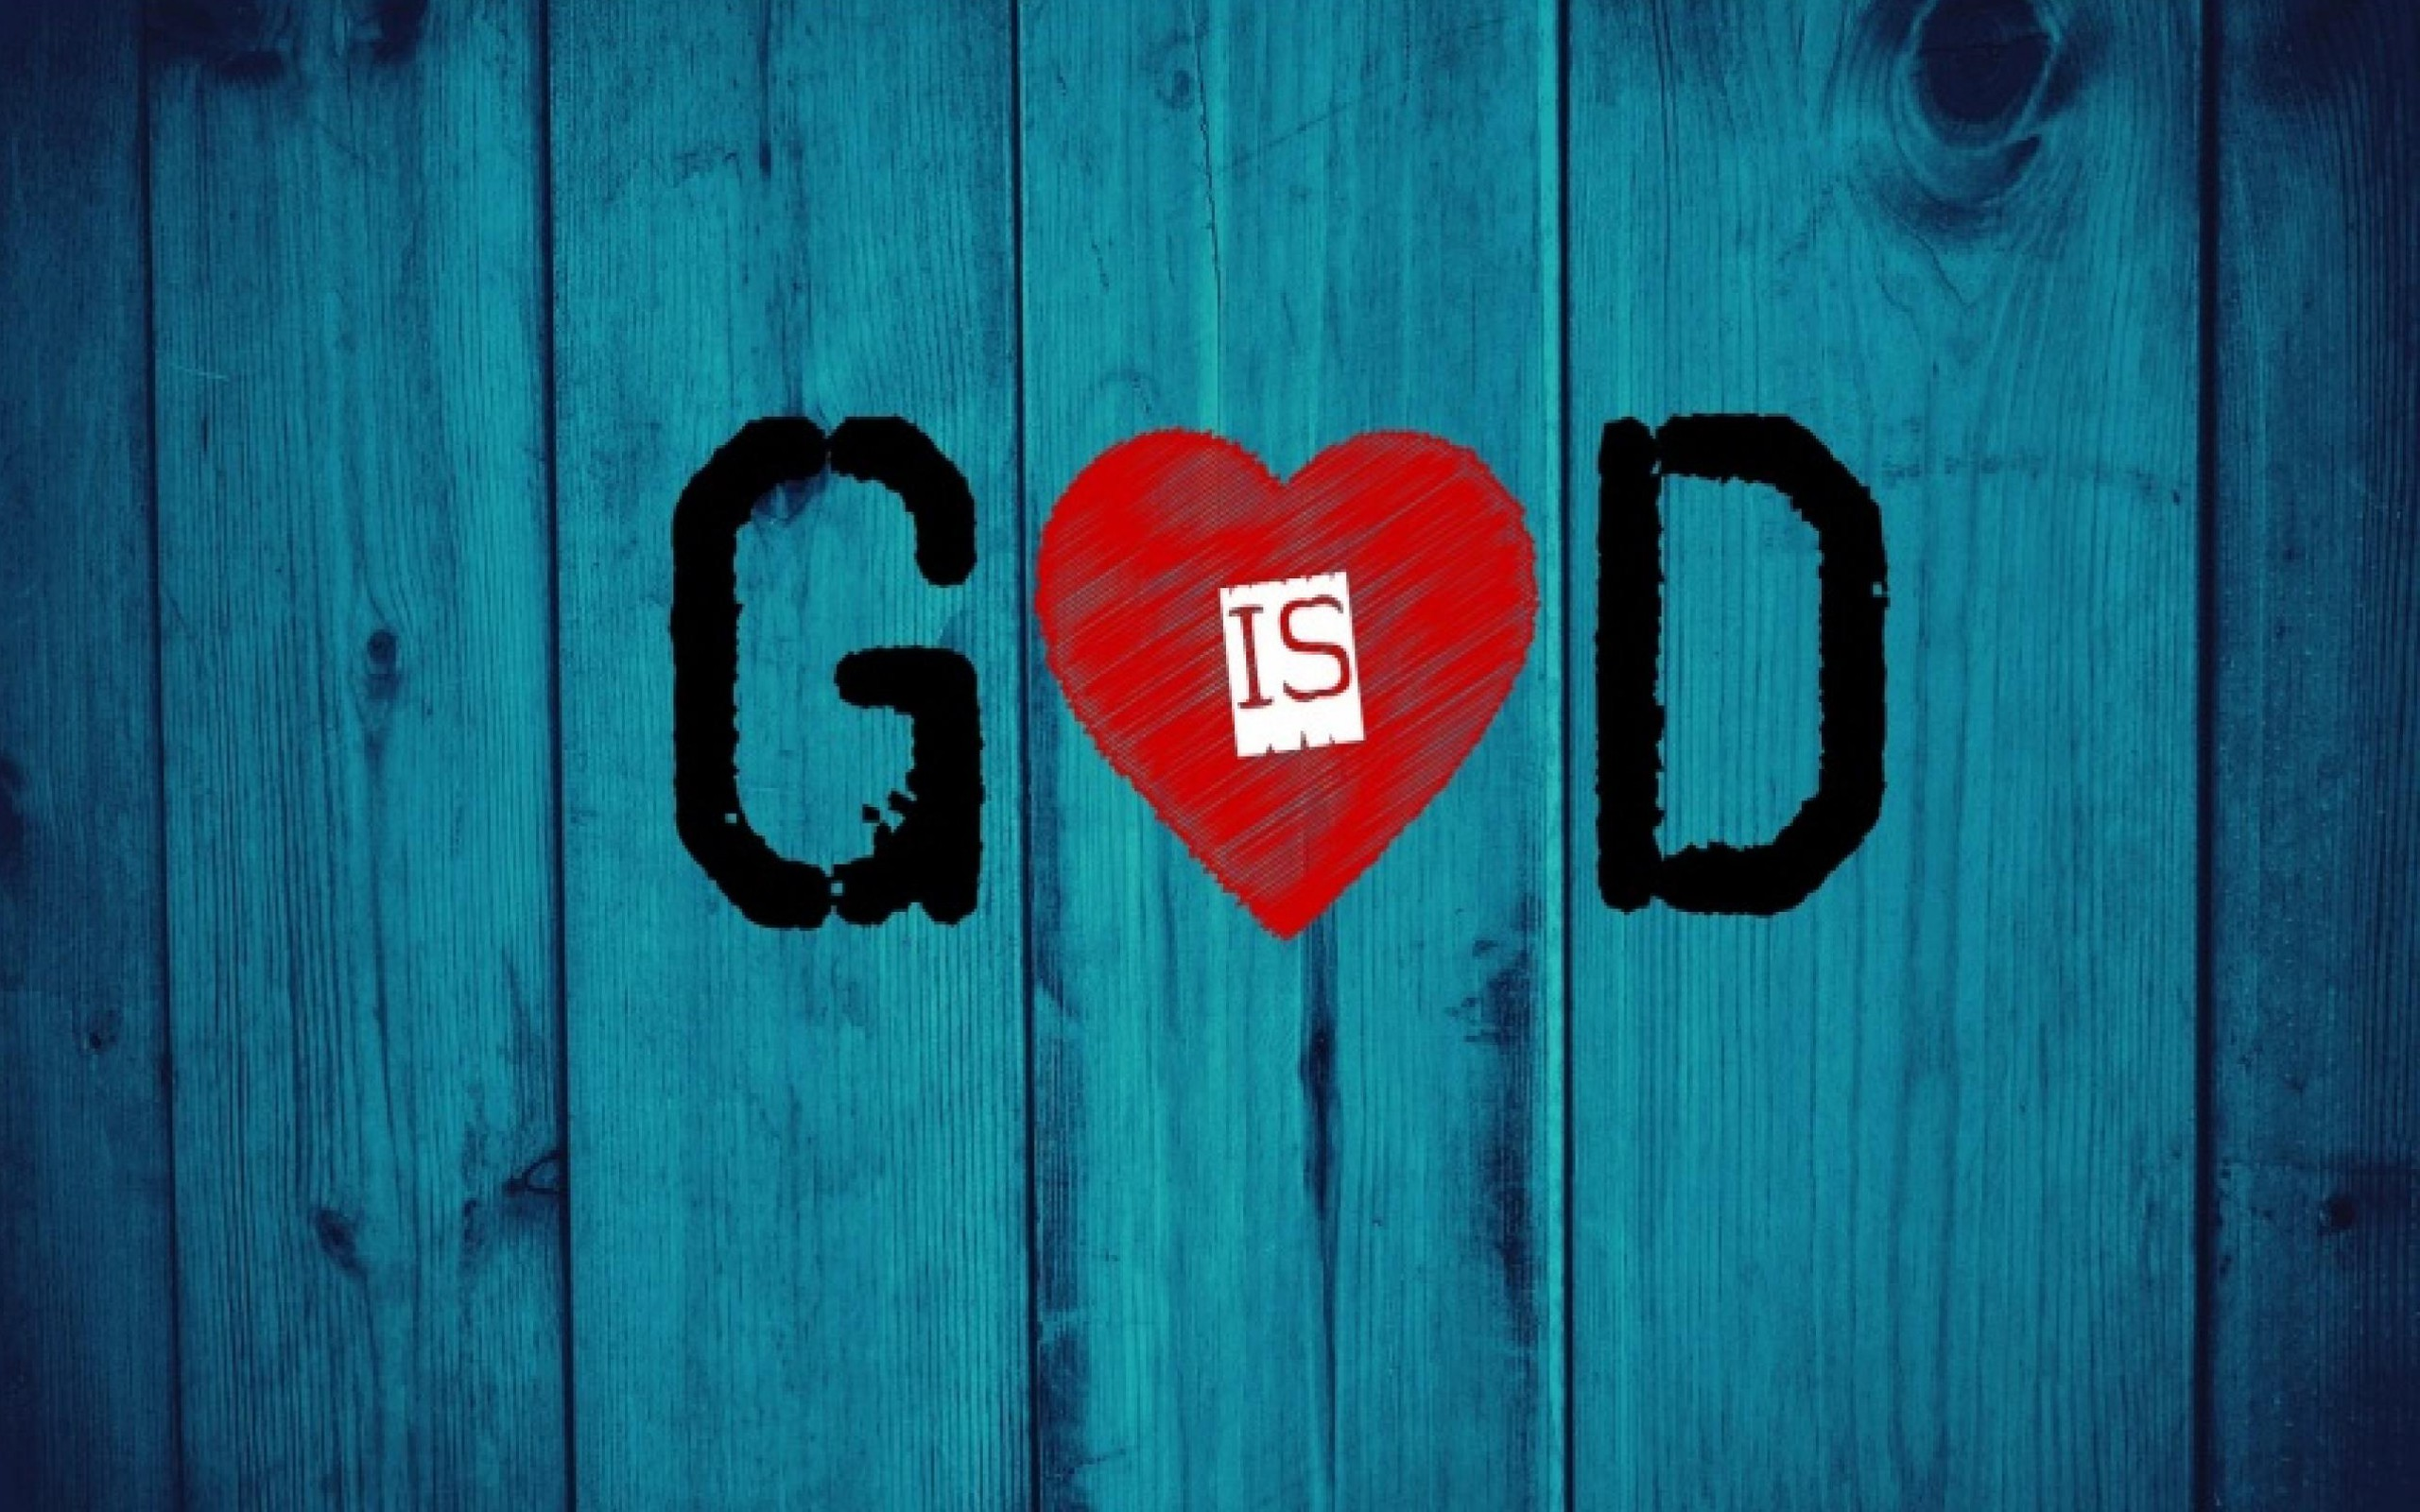 God Is Love Wallpaper For Mobile : God is Love Desktop Wallpaper - WallpaperSafari